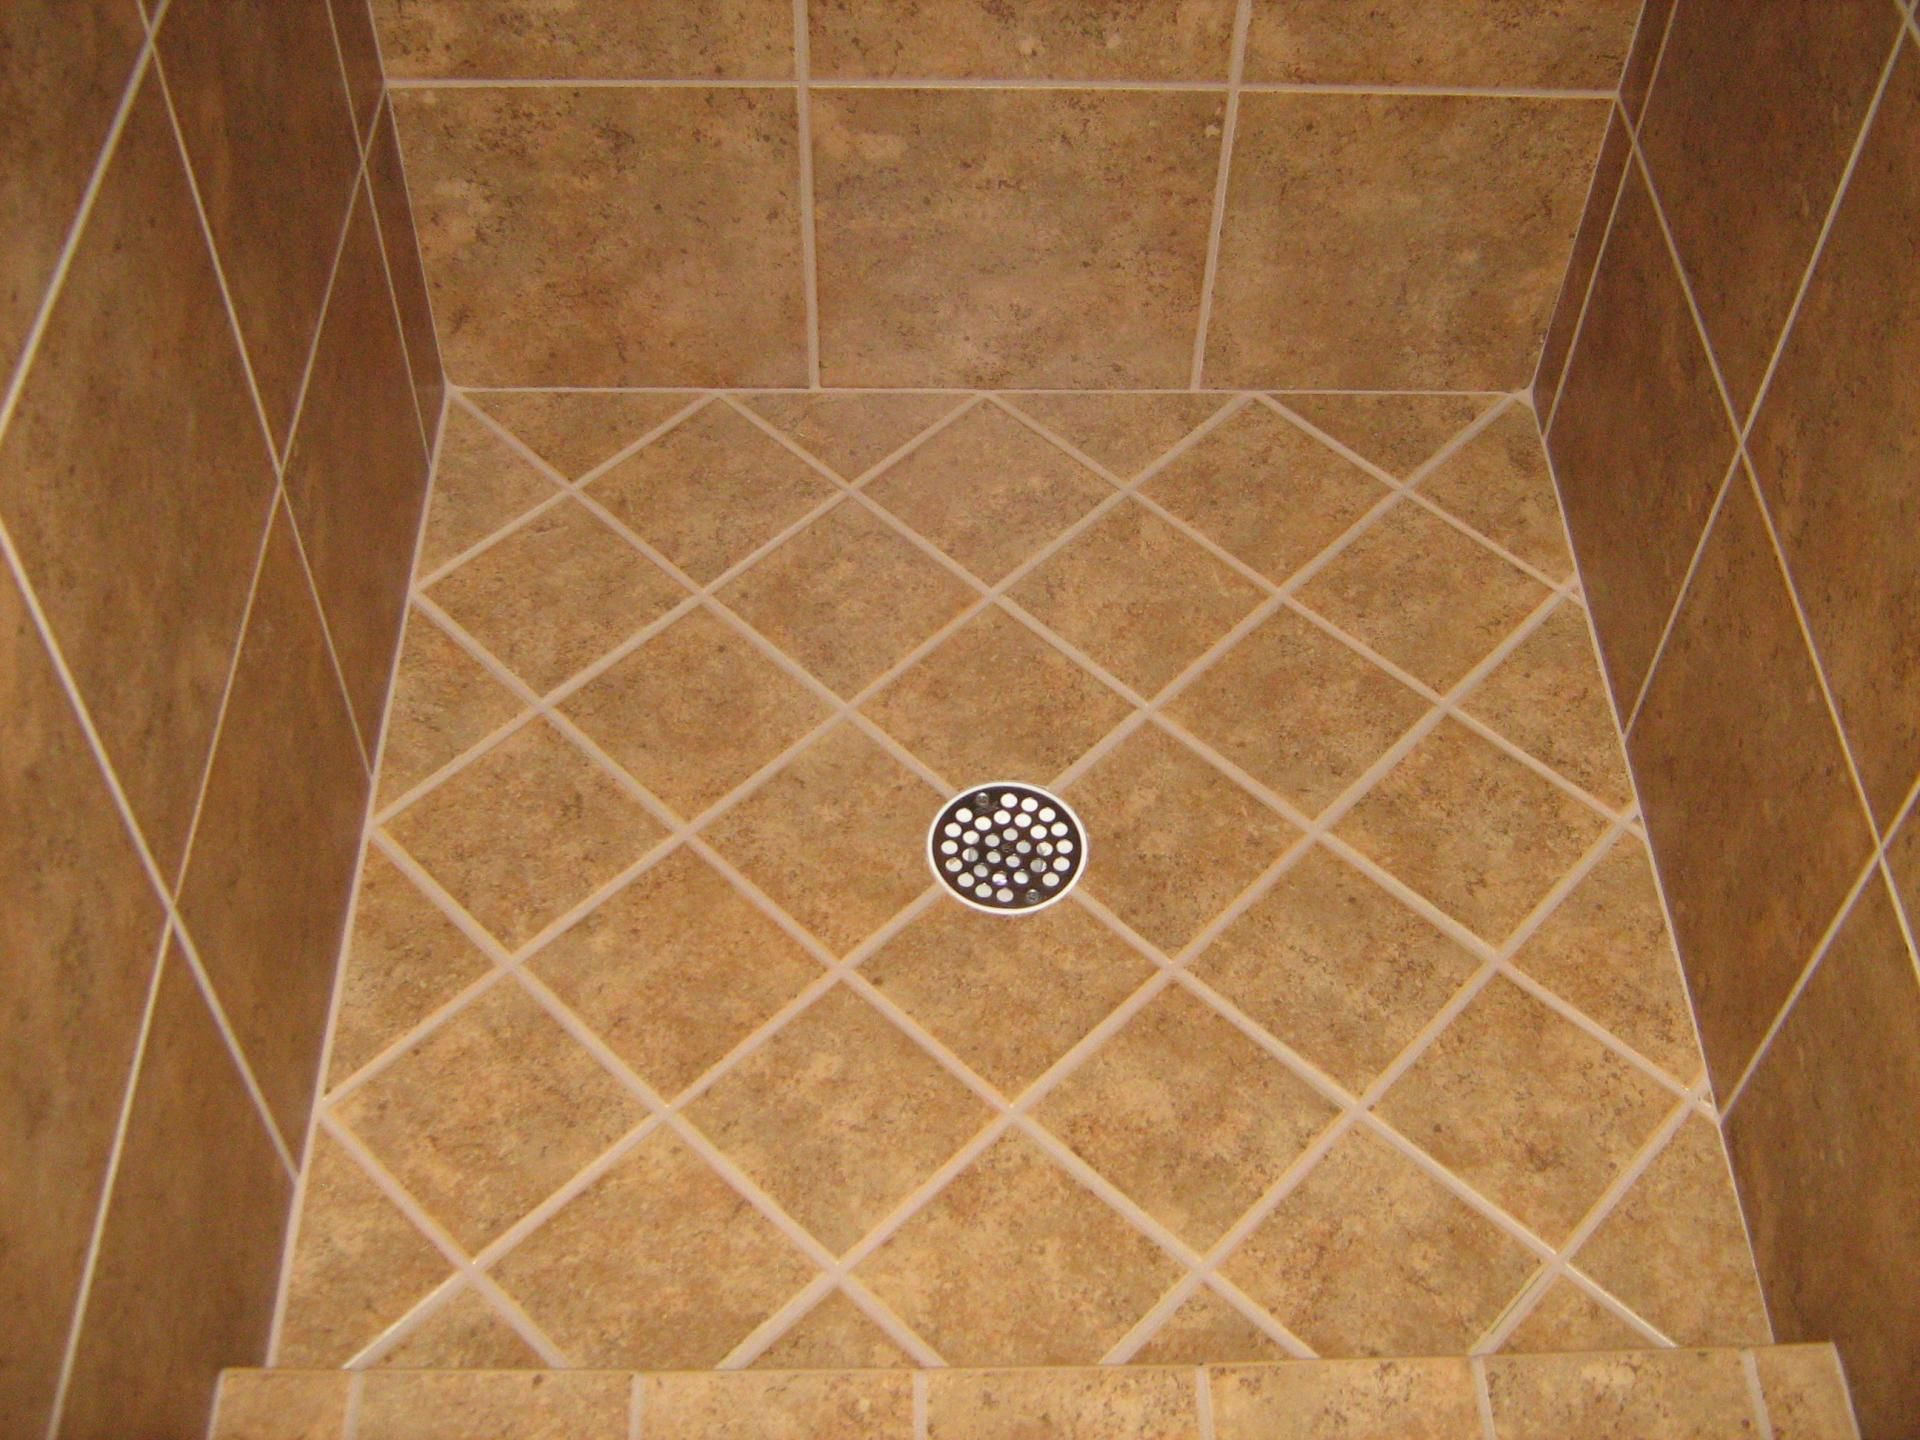 Stand up shower designs shower tile in small stand for Tile shower floor ideas